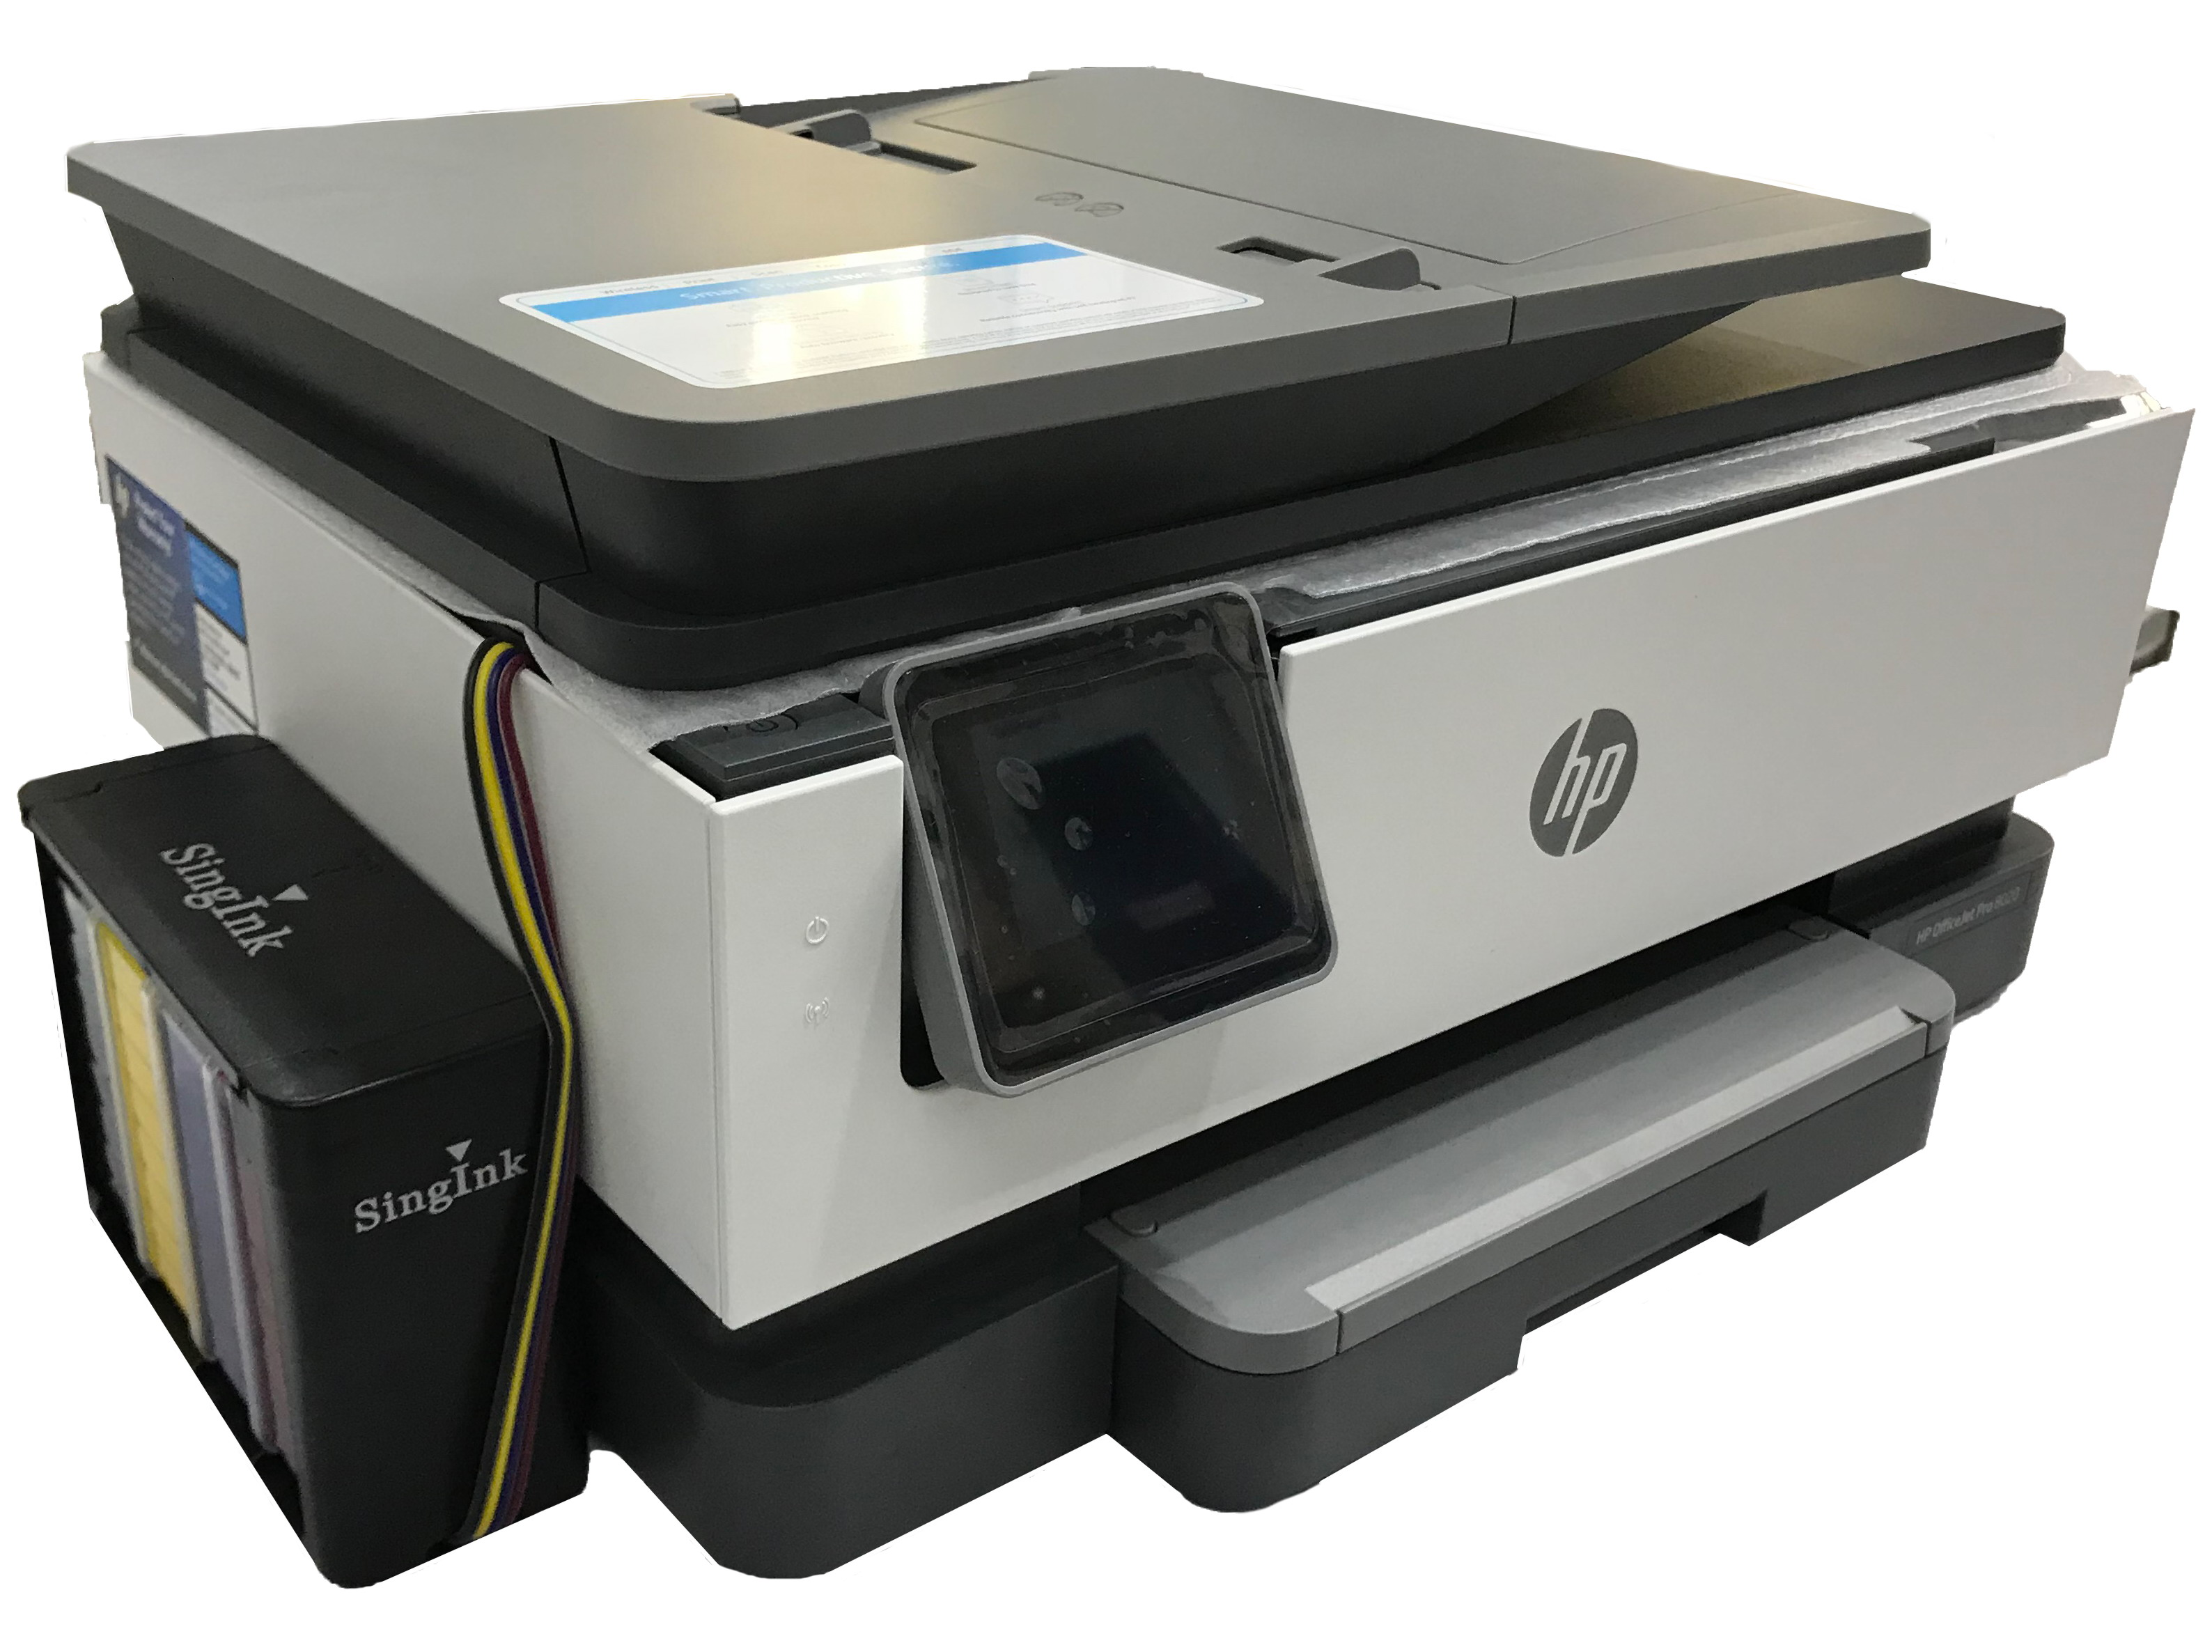 HP OfficeJet Pro 8020 All-in-One Printer with Continuous Ink Supply System  (CISS)